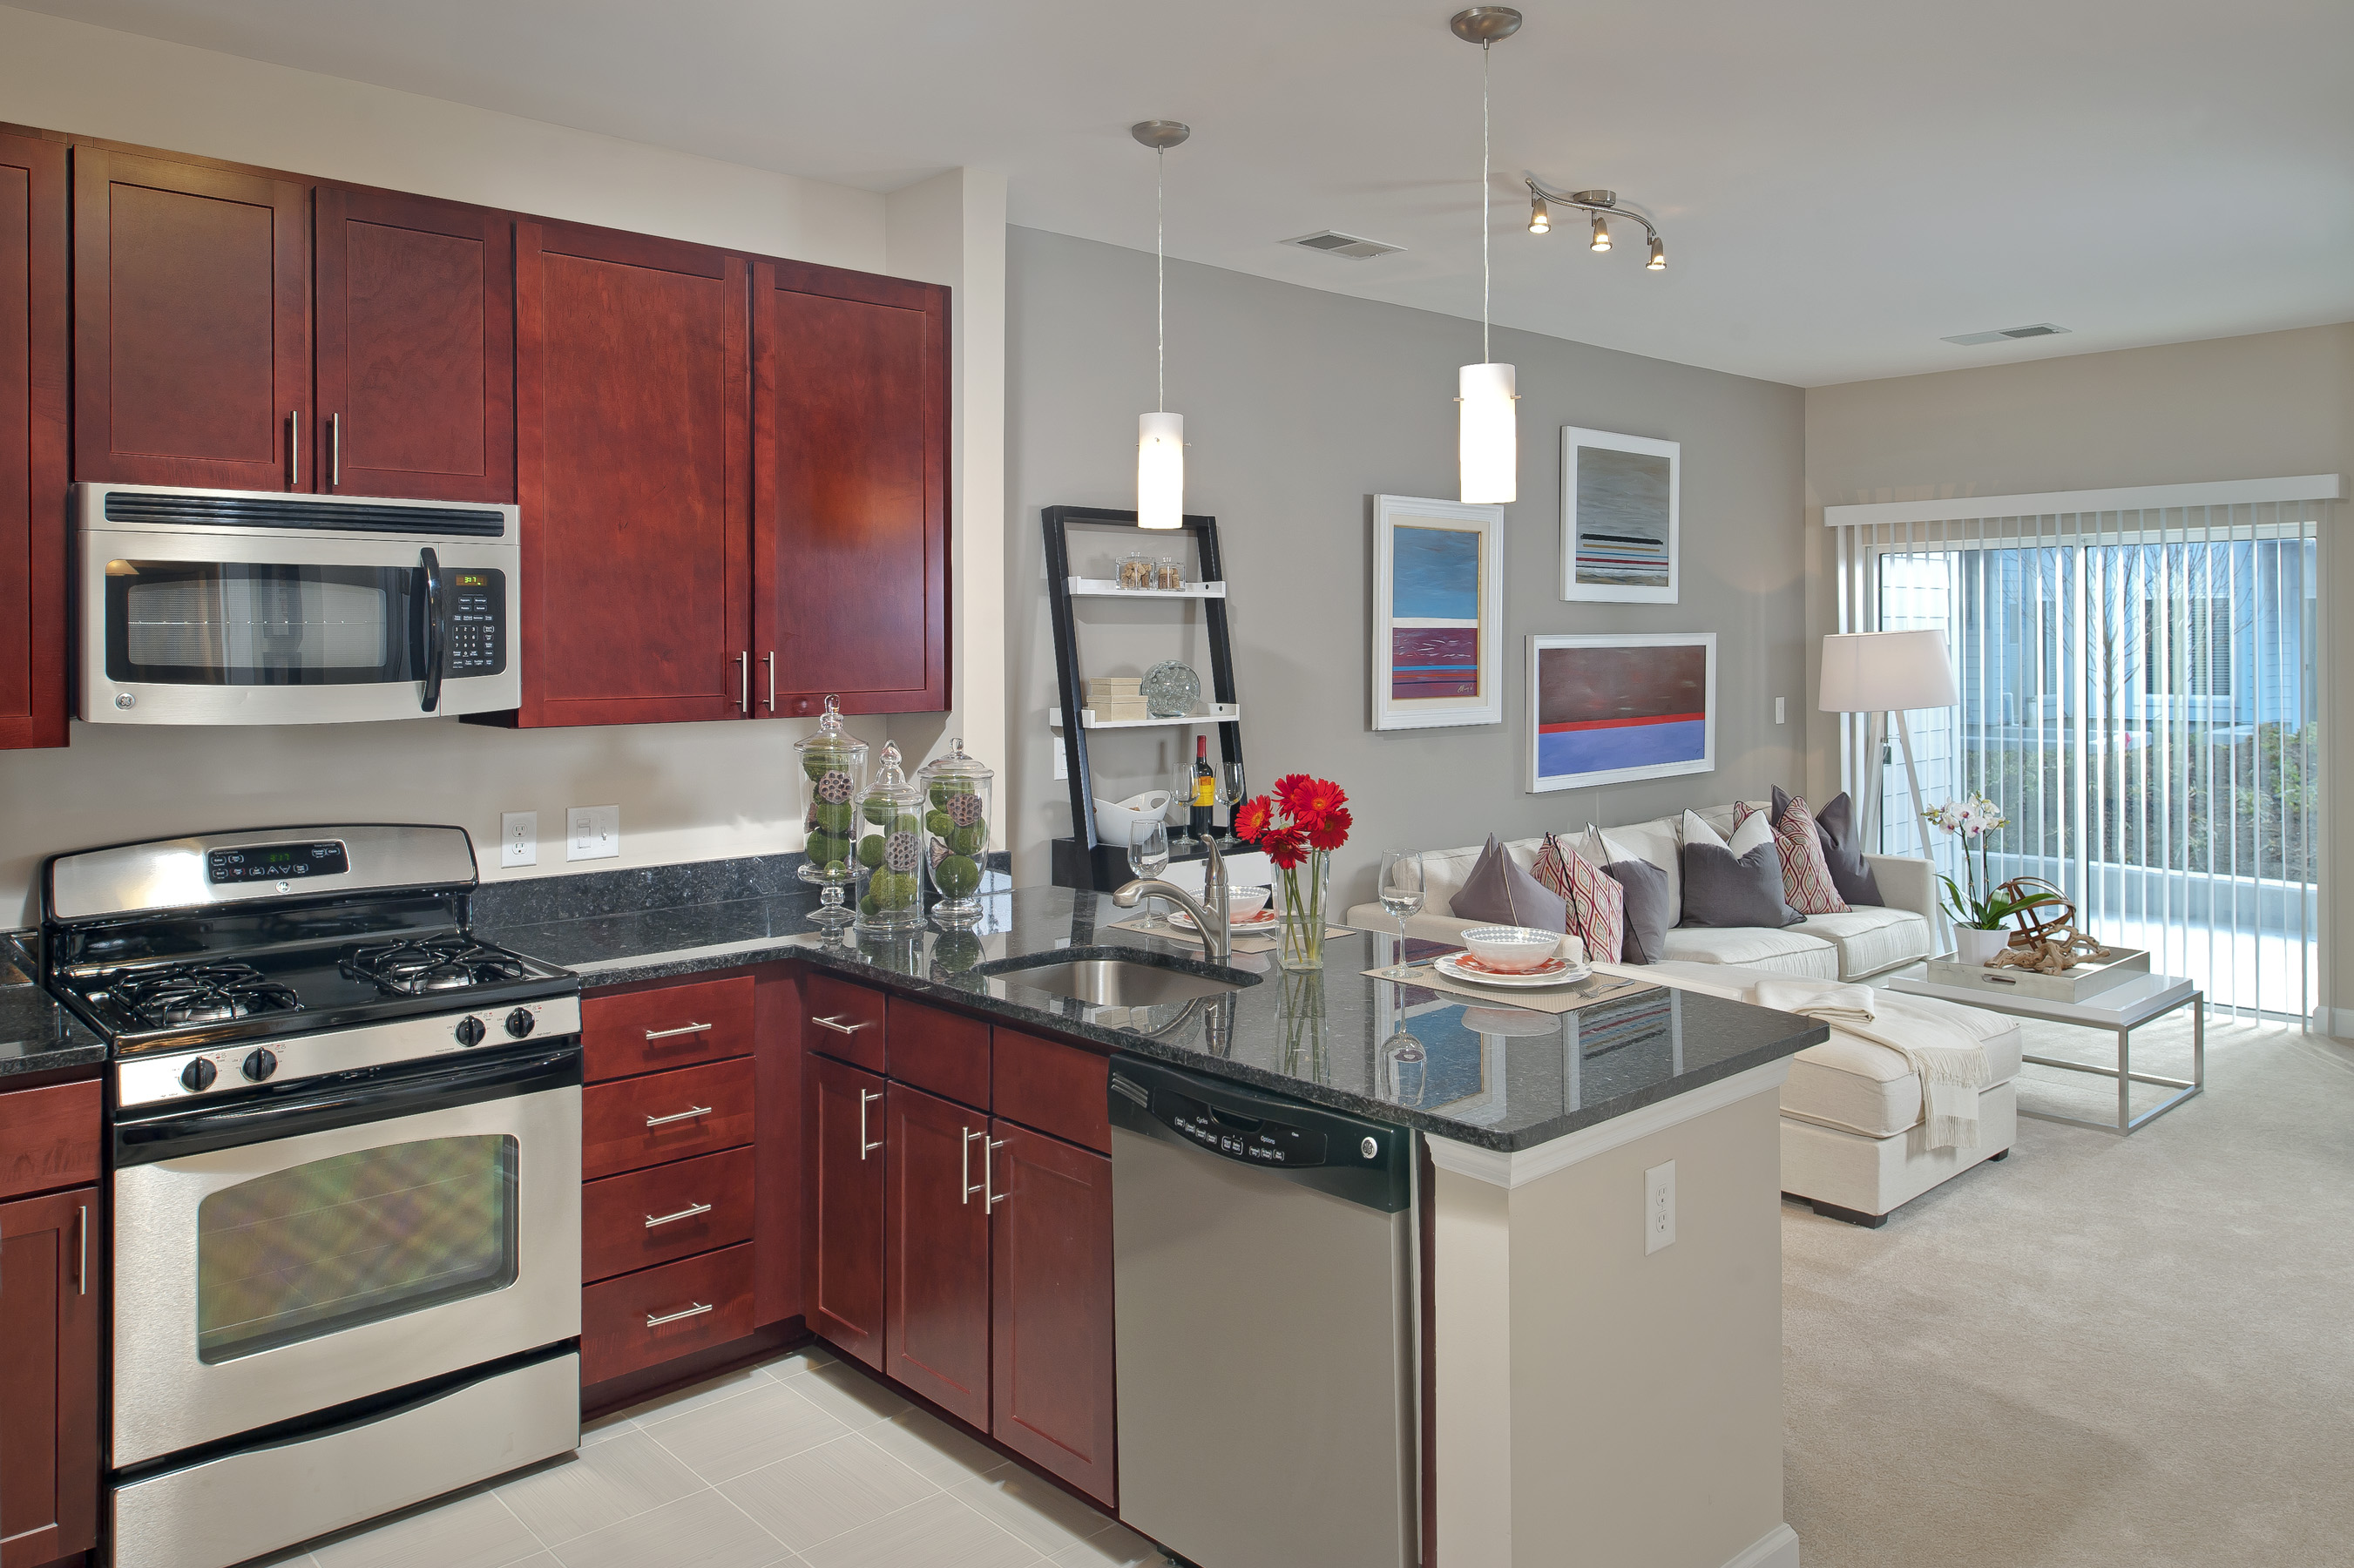 The Galaxy Apartments New Model In Silver Spring, MarylandThe Galaxy  Apartments New Model In Silver Spring, ...